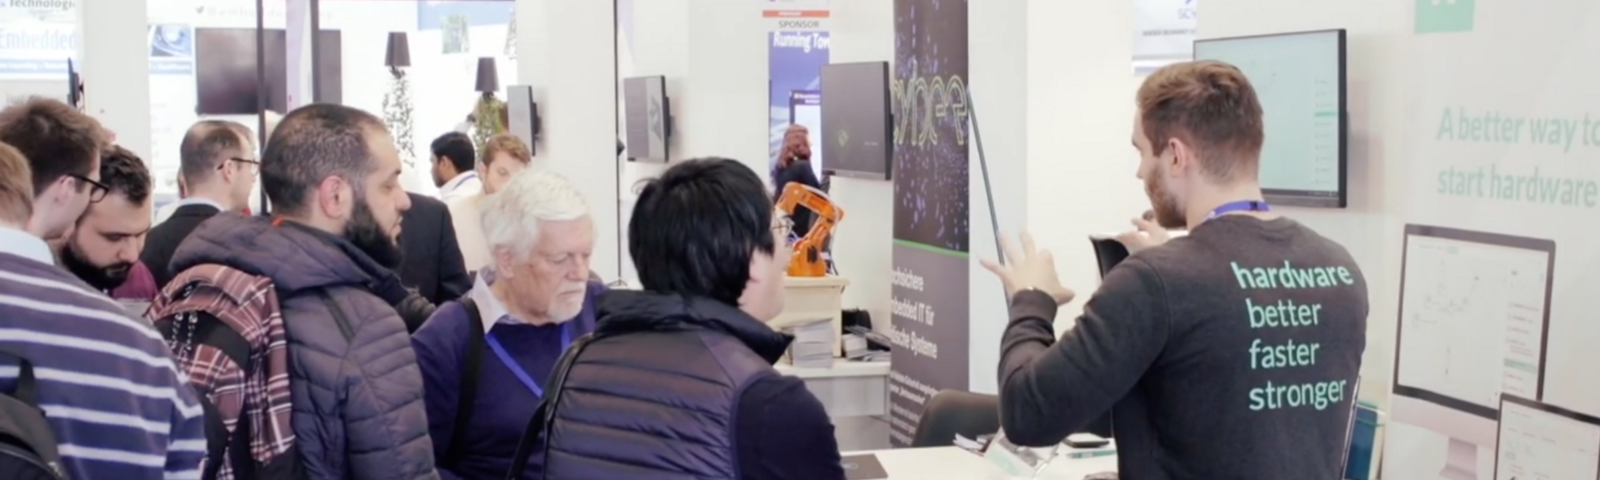 Wisebatt employee presenting the company on a booth at embedded world 2019